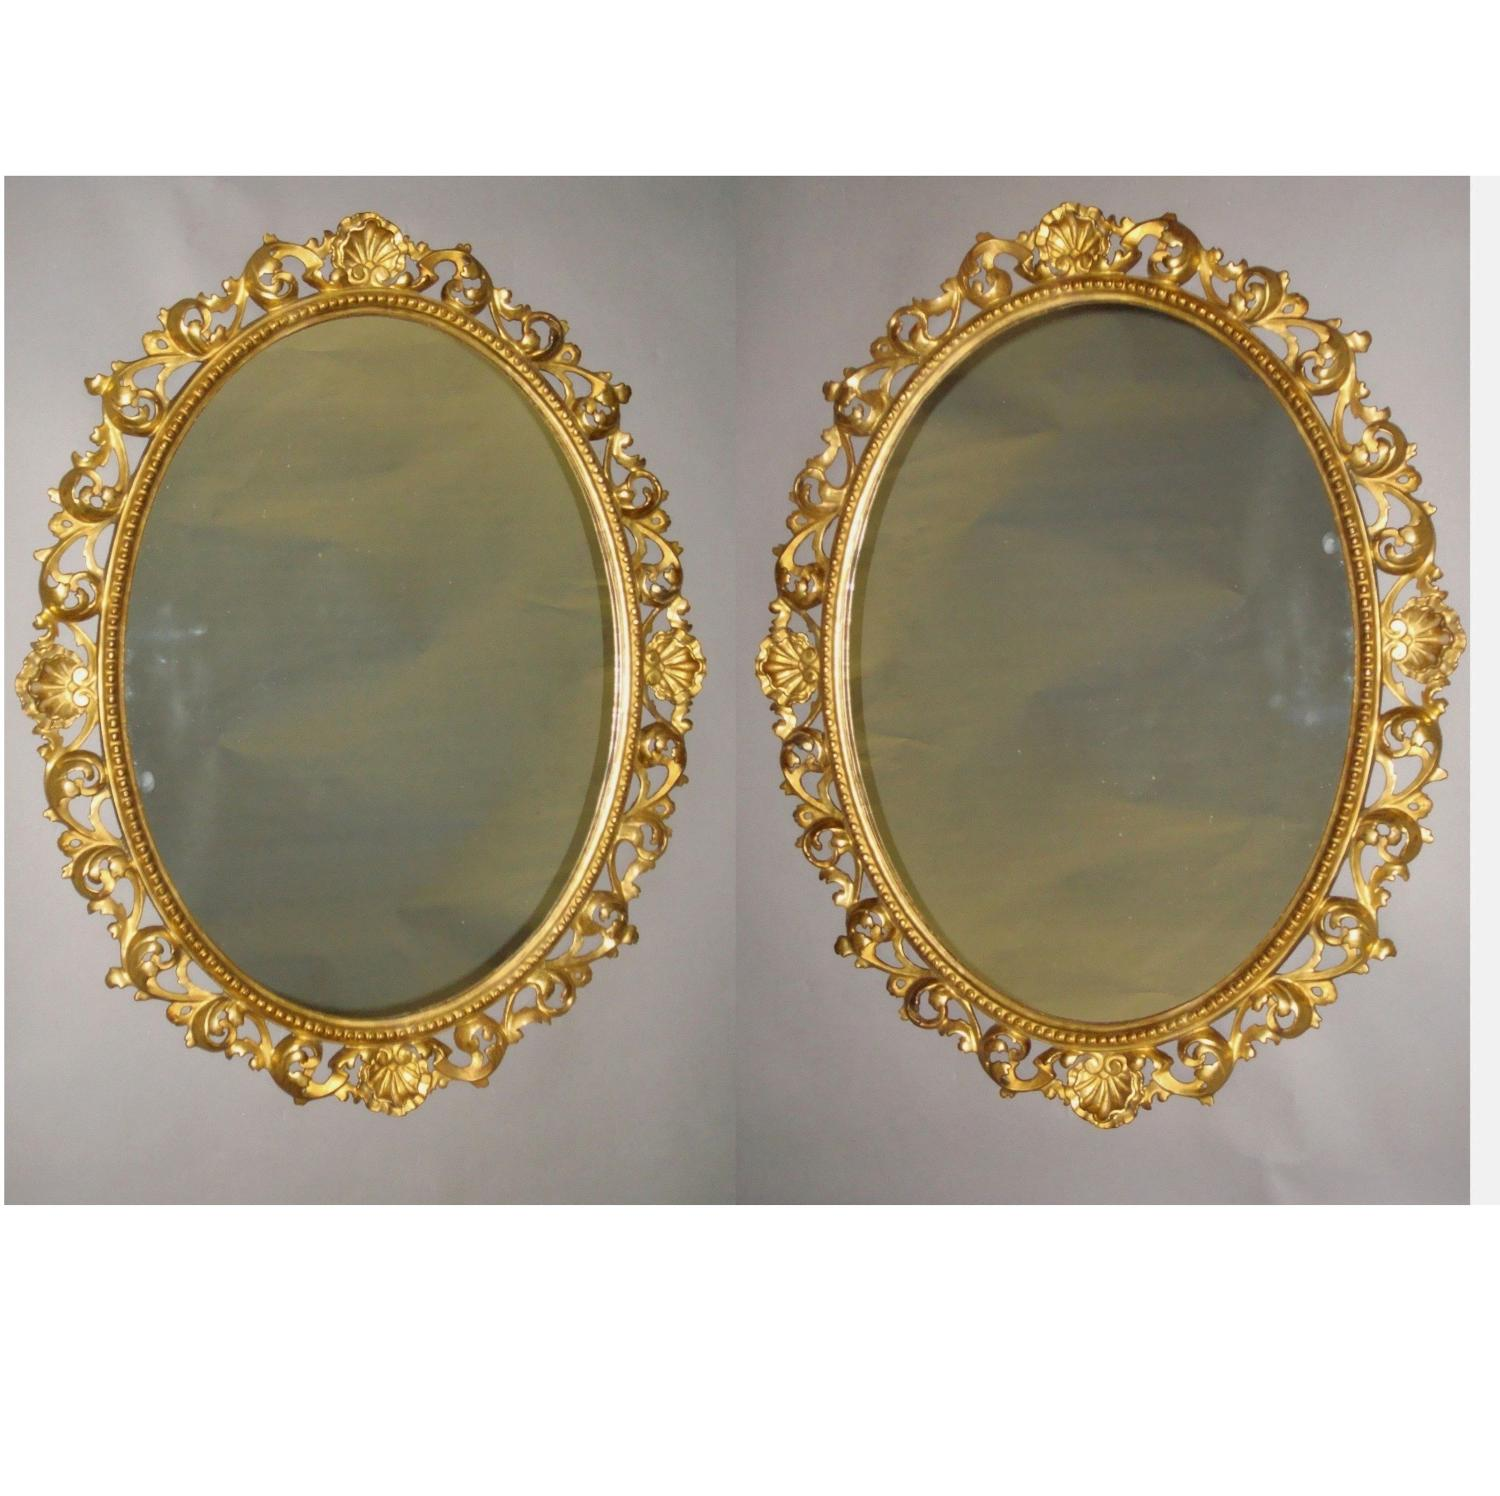 C19th pair of Florentine carved giltwood wall mirrors